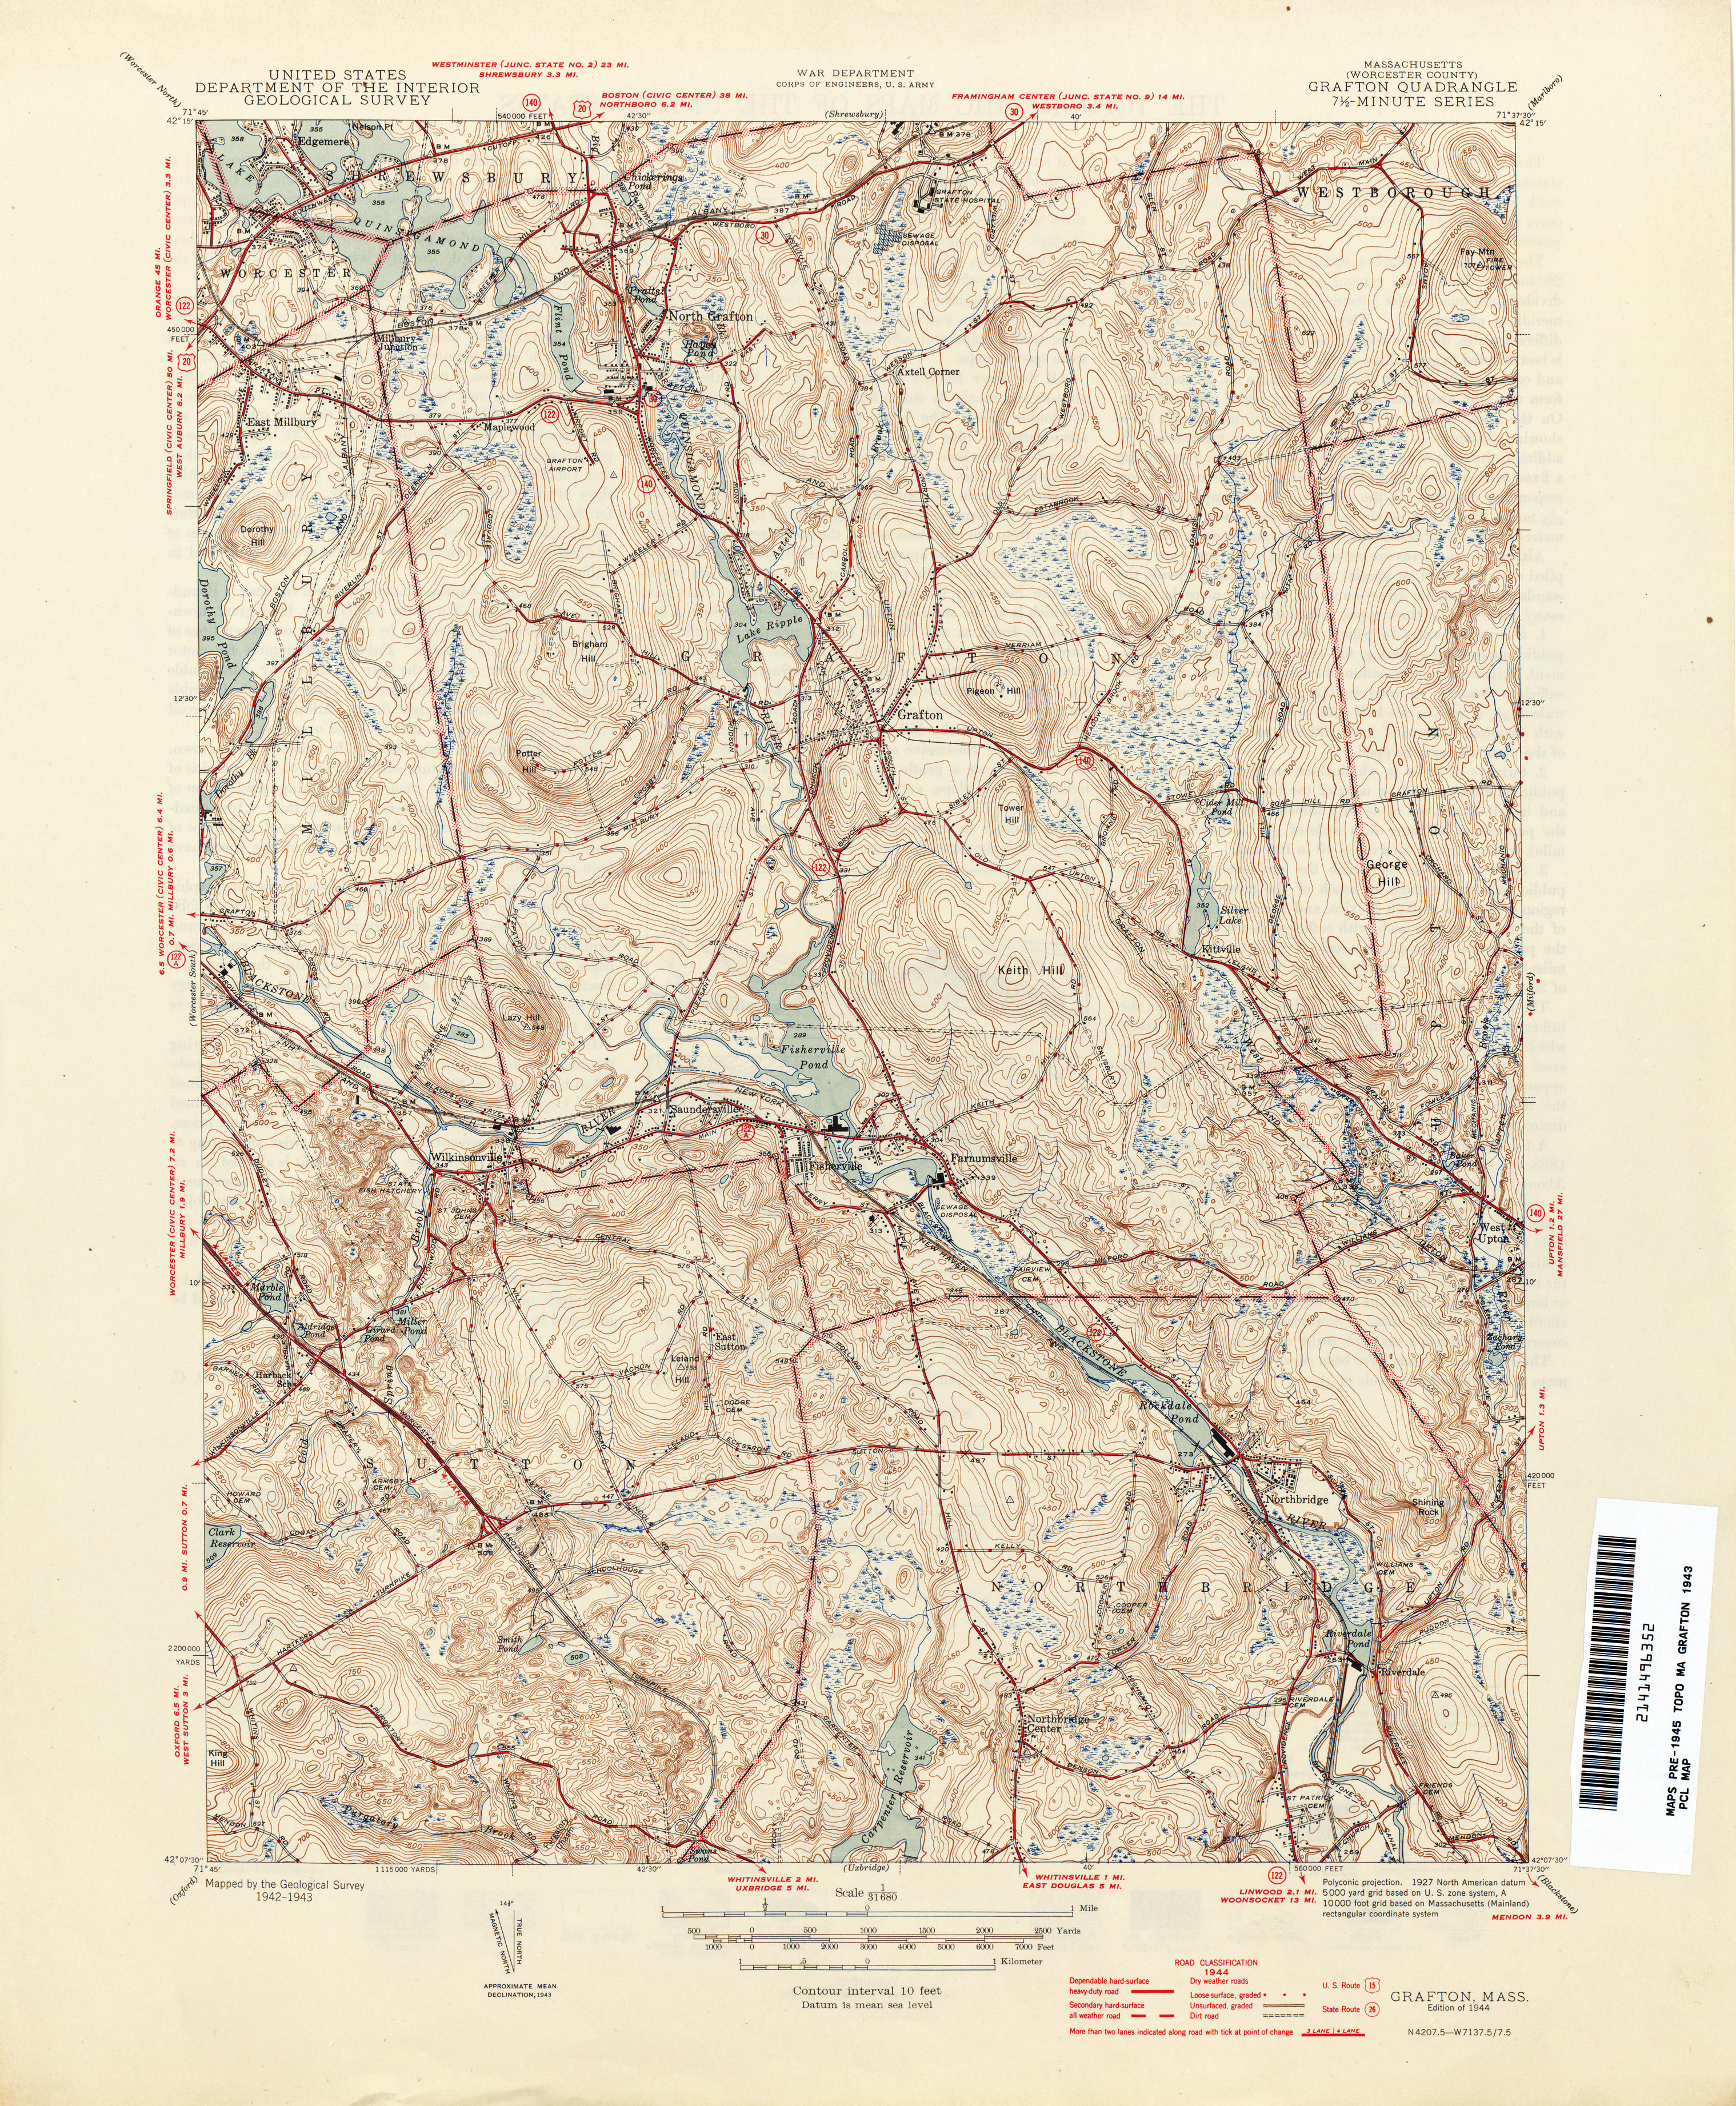 Topographical Map Of Grafton MA Mapped By US Geological - Us geological topographic maps